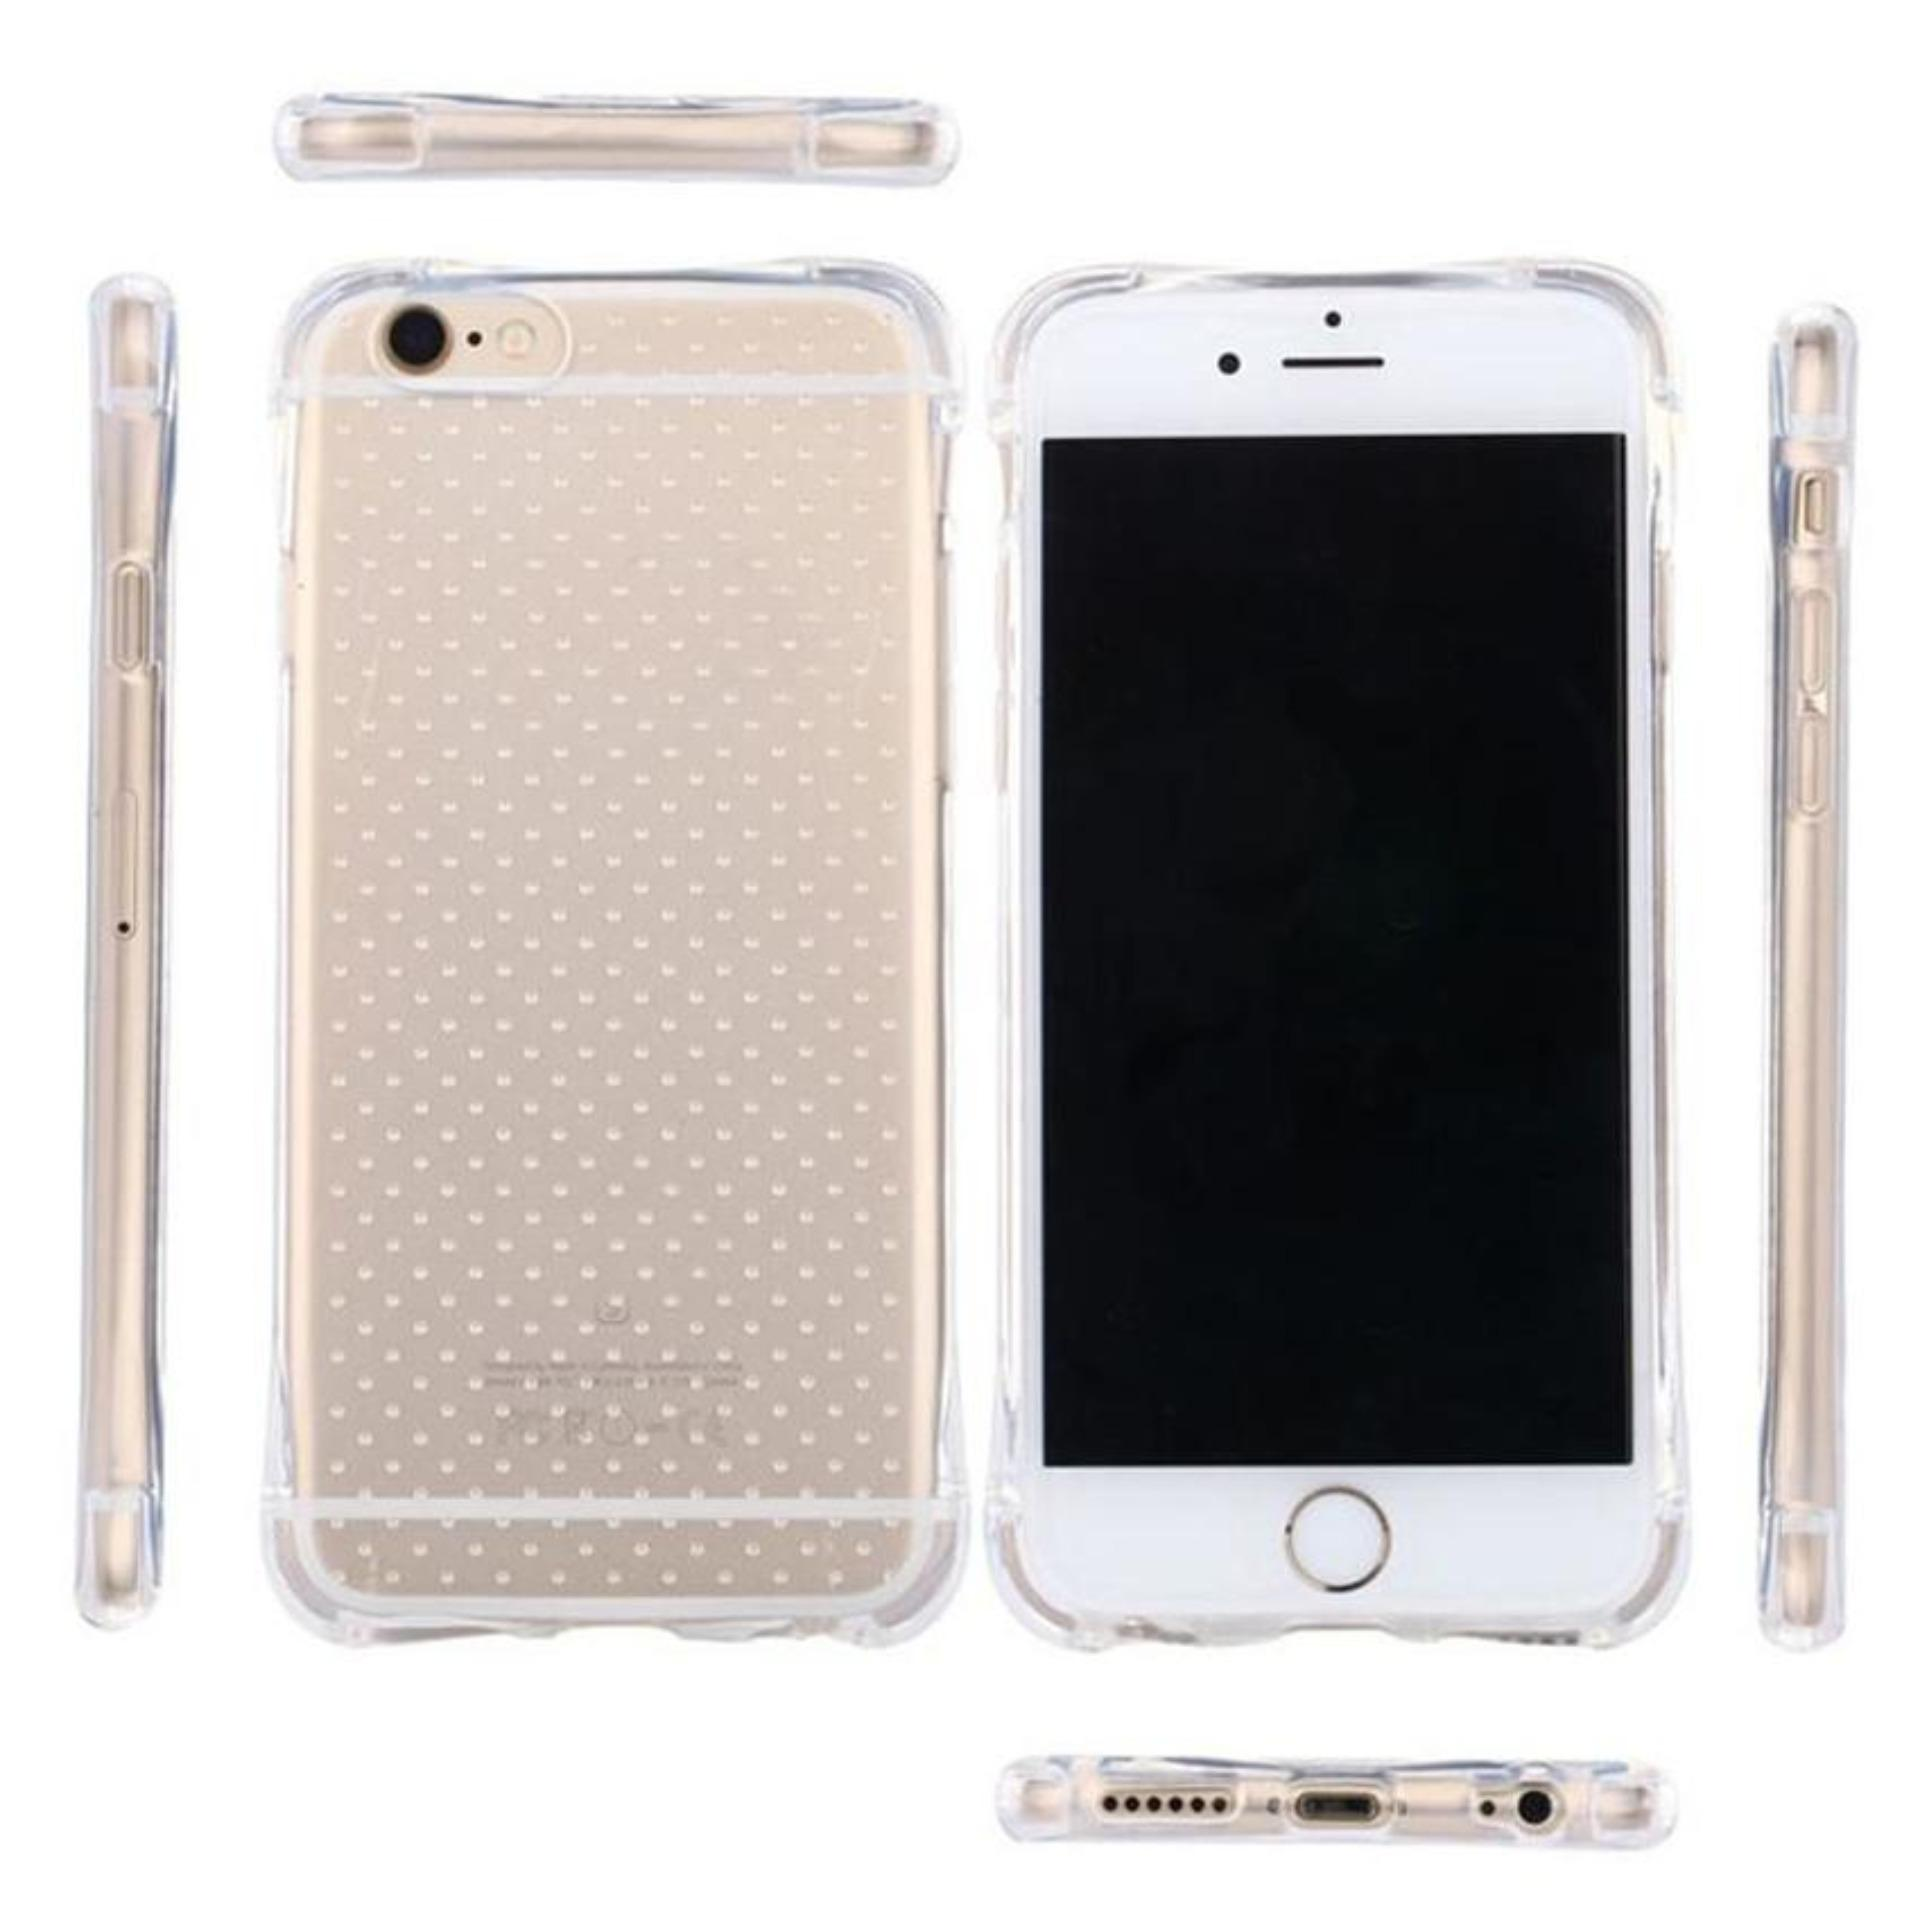 ... Case Anti Shock / Anti Crack for iPhone 6 / 6S - Clear ...